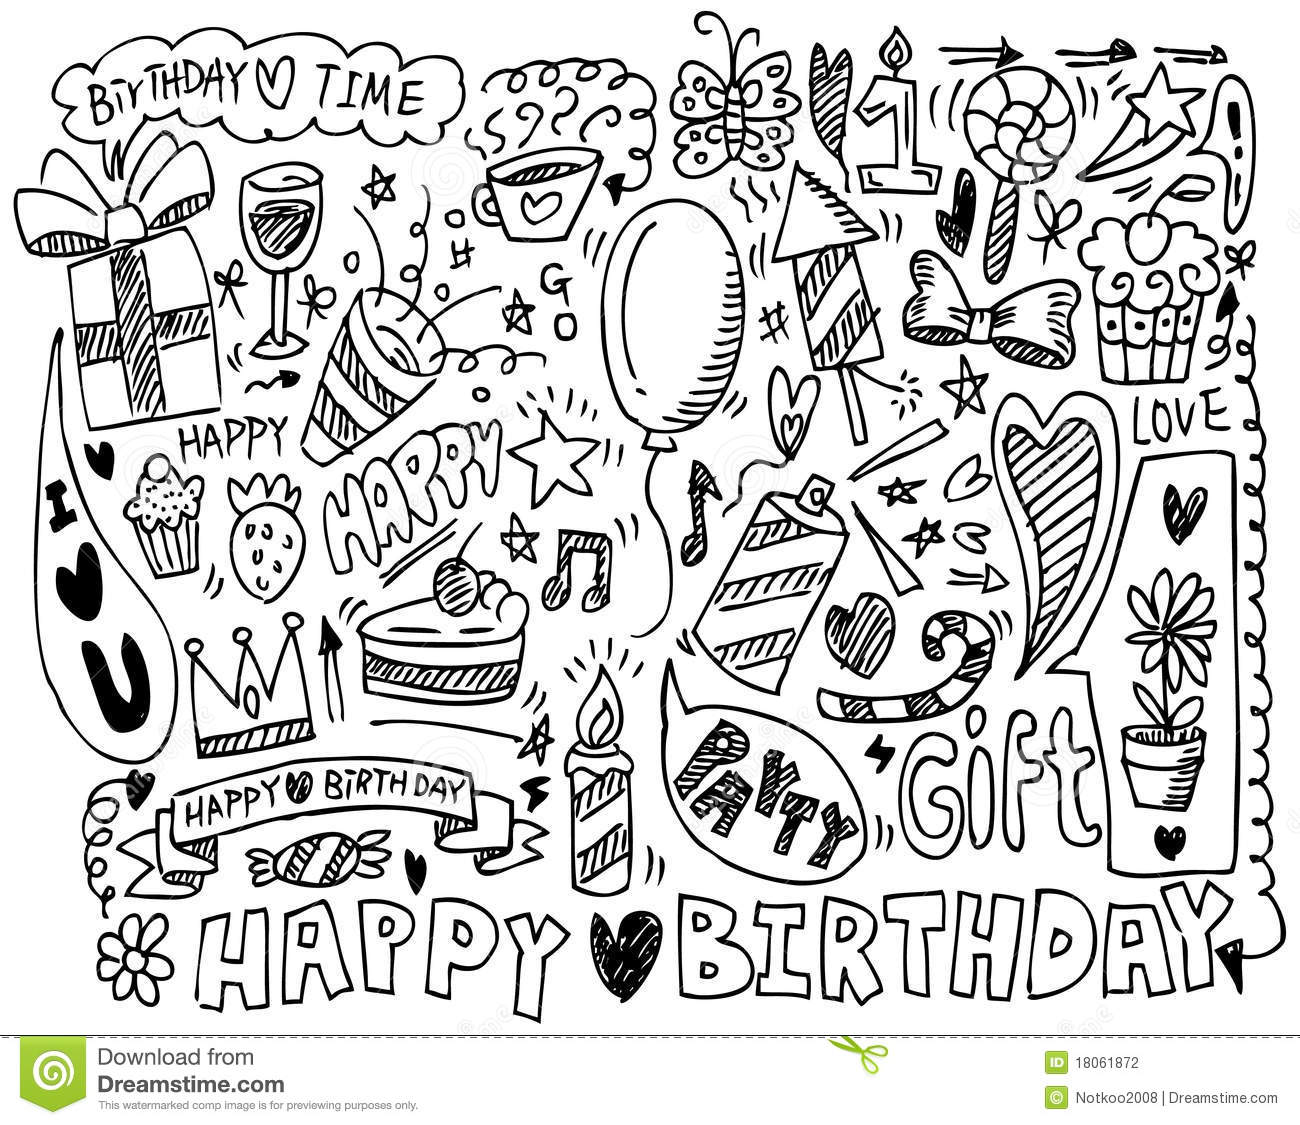 Birthday Card Drawing together with White Birthday Cake Clipart likewise Cartoon Happy Birthday Text 180695 also Gymnastics Silhouettes also Post train Track Printable Templates 48514. on cartoon birthday cake